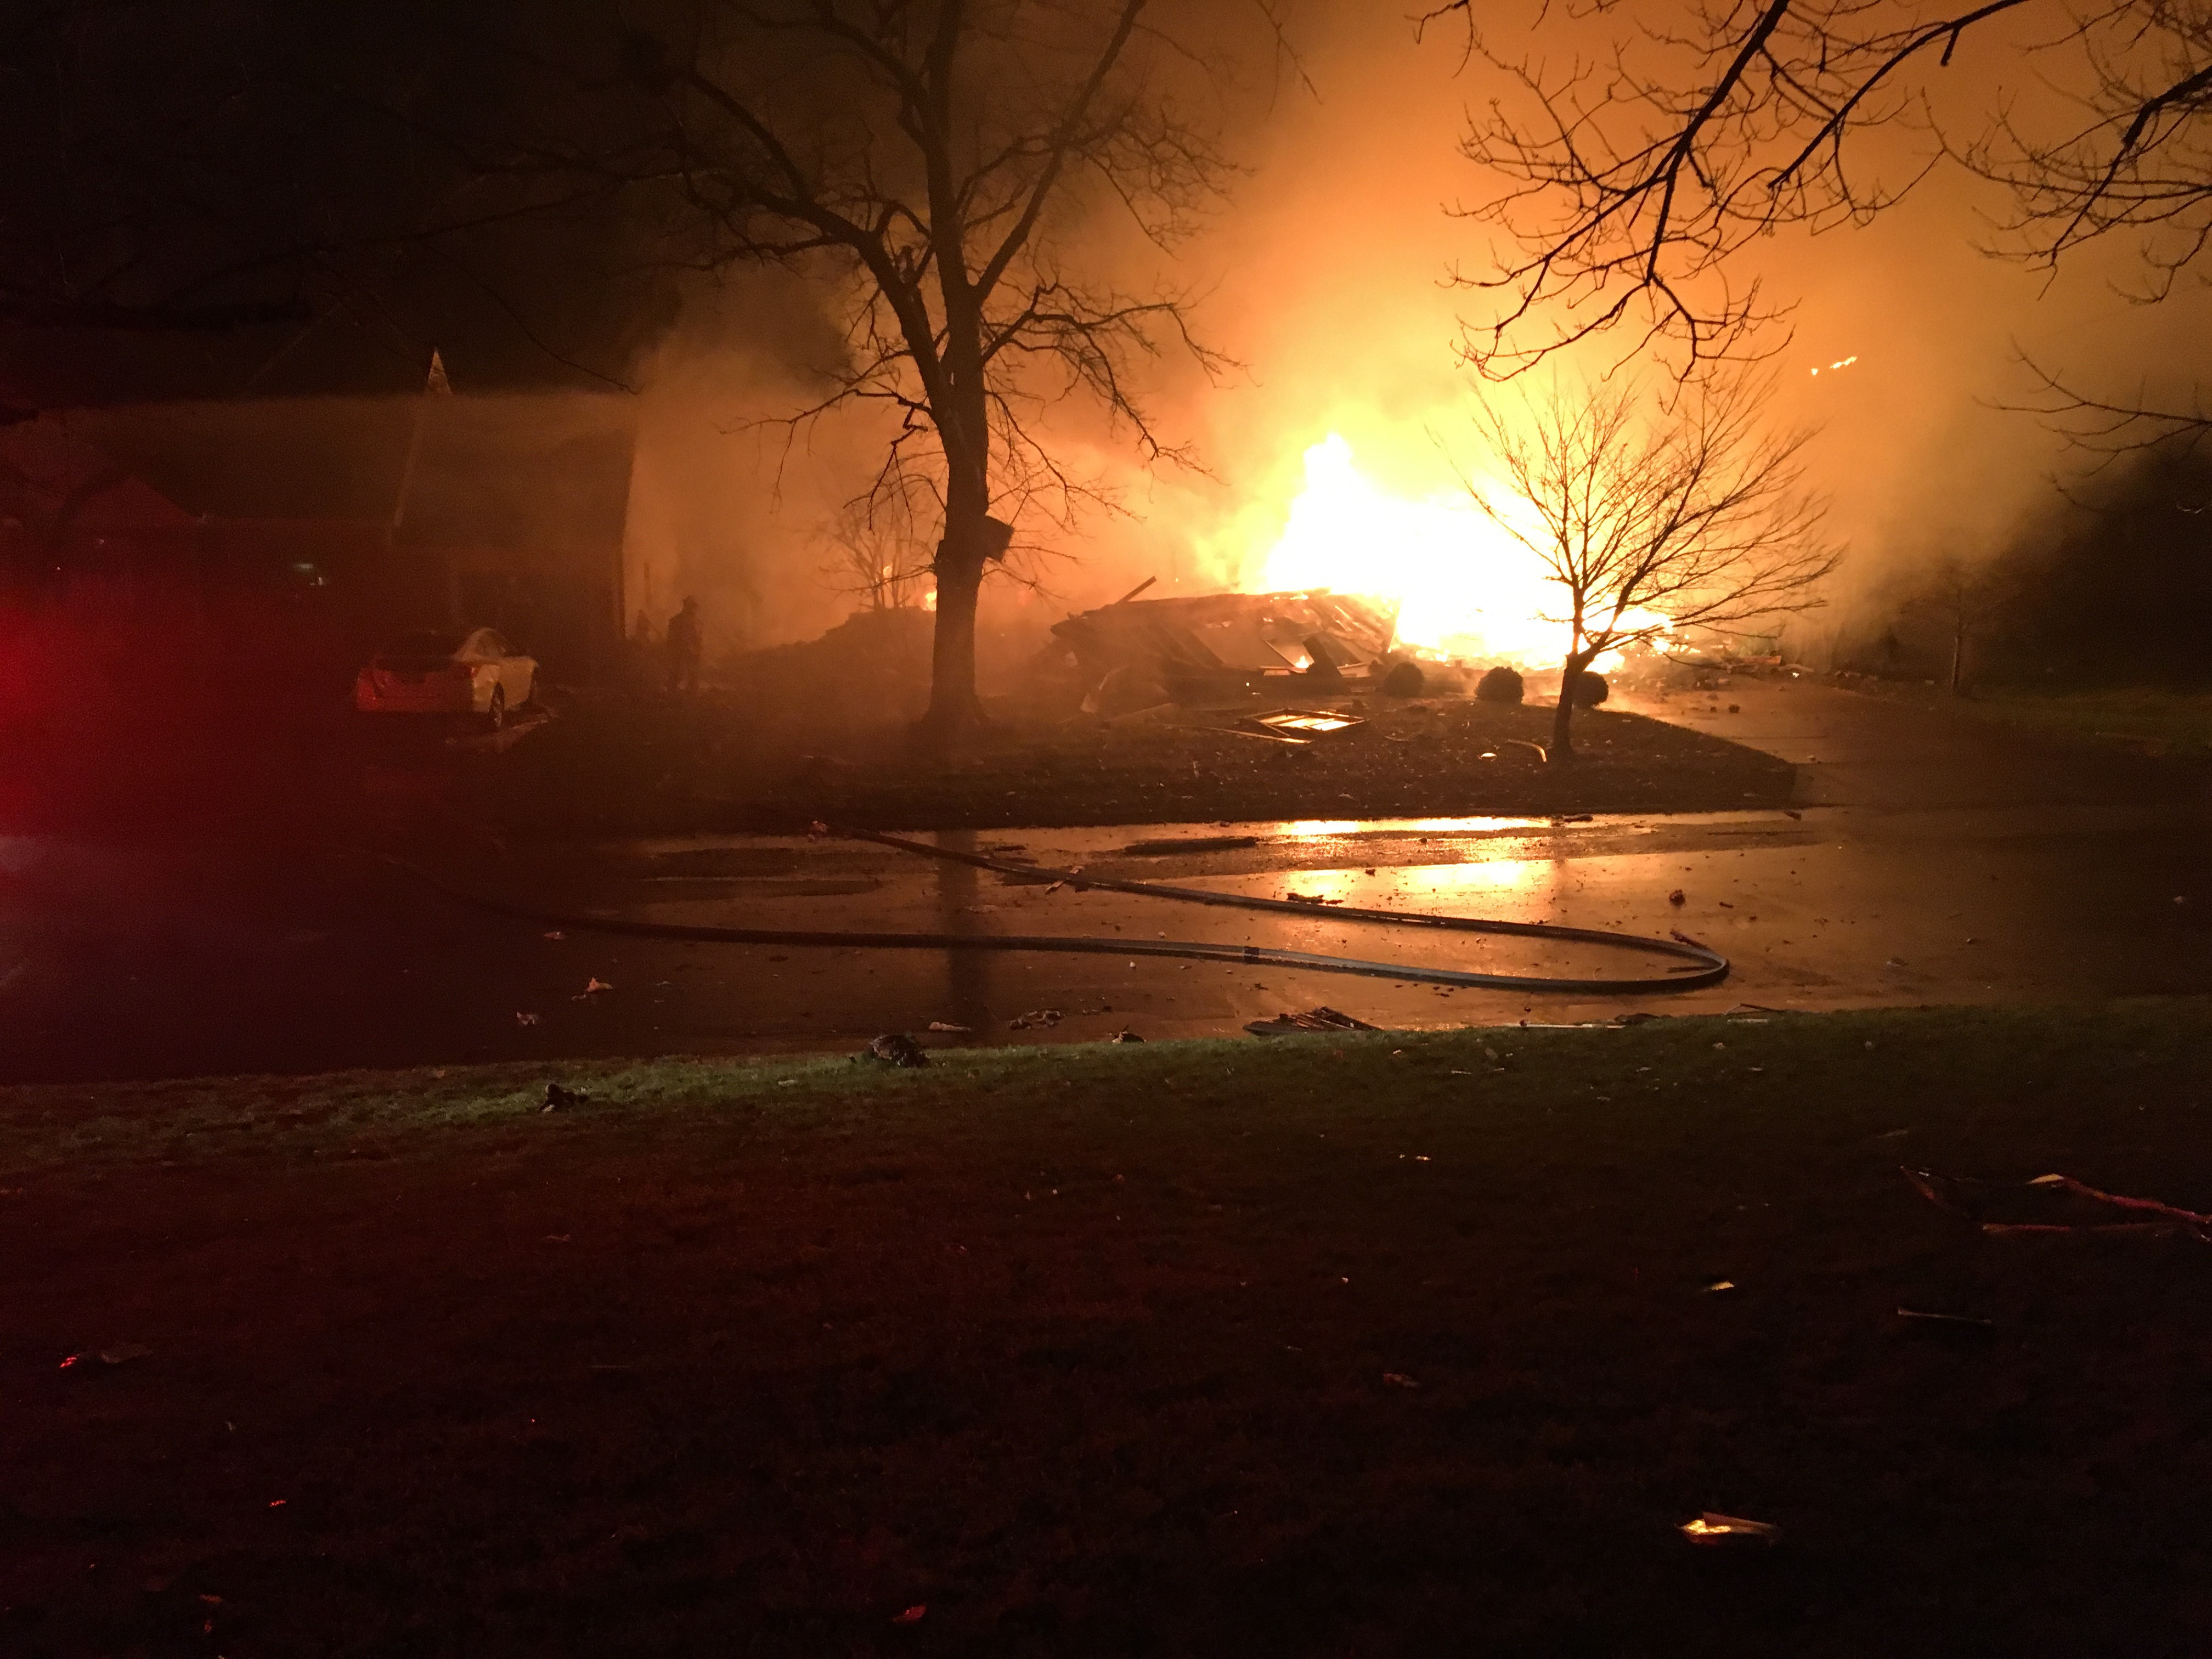 Person killed after reported house explosion in Kettering, coroner says (WKEF/WRGT)